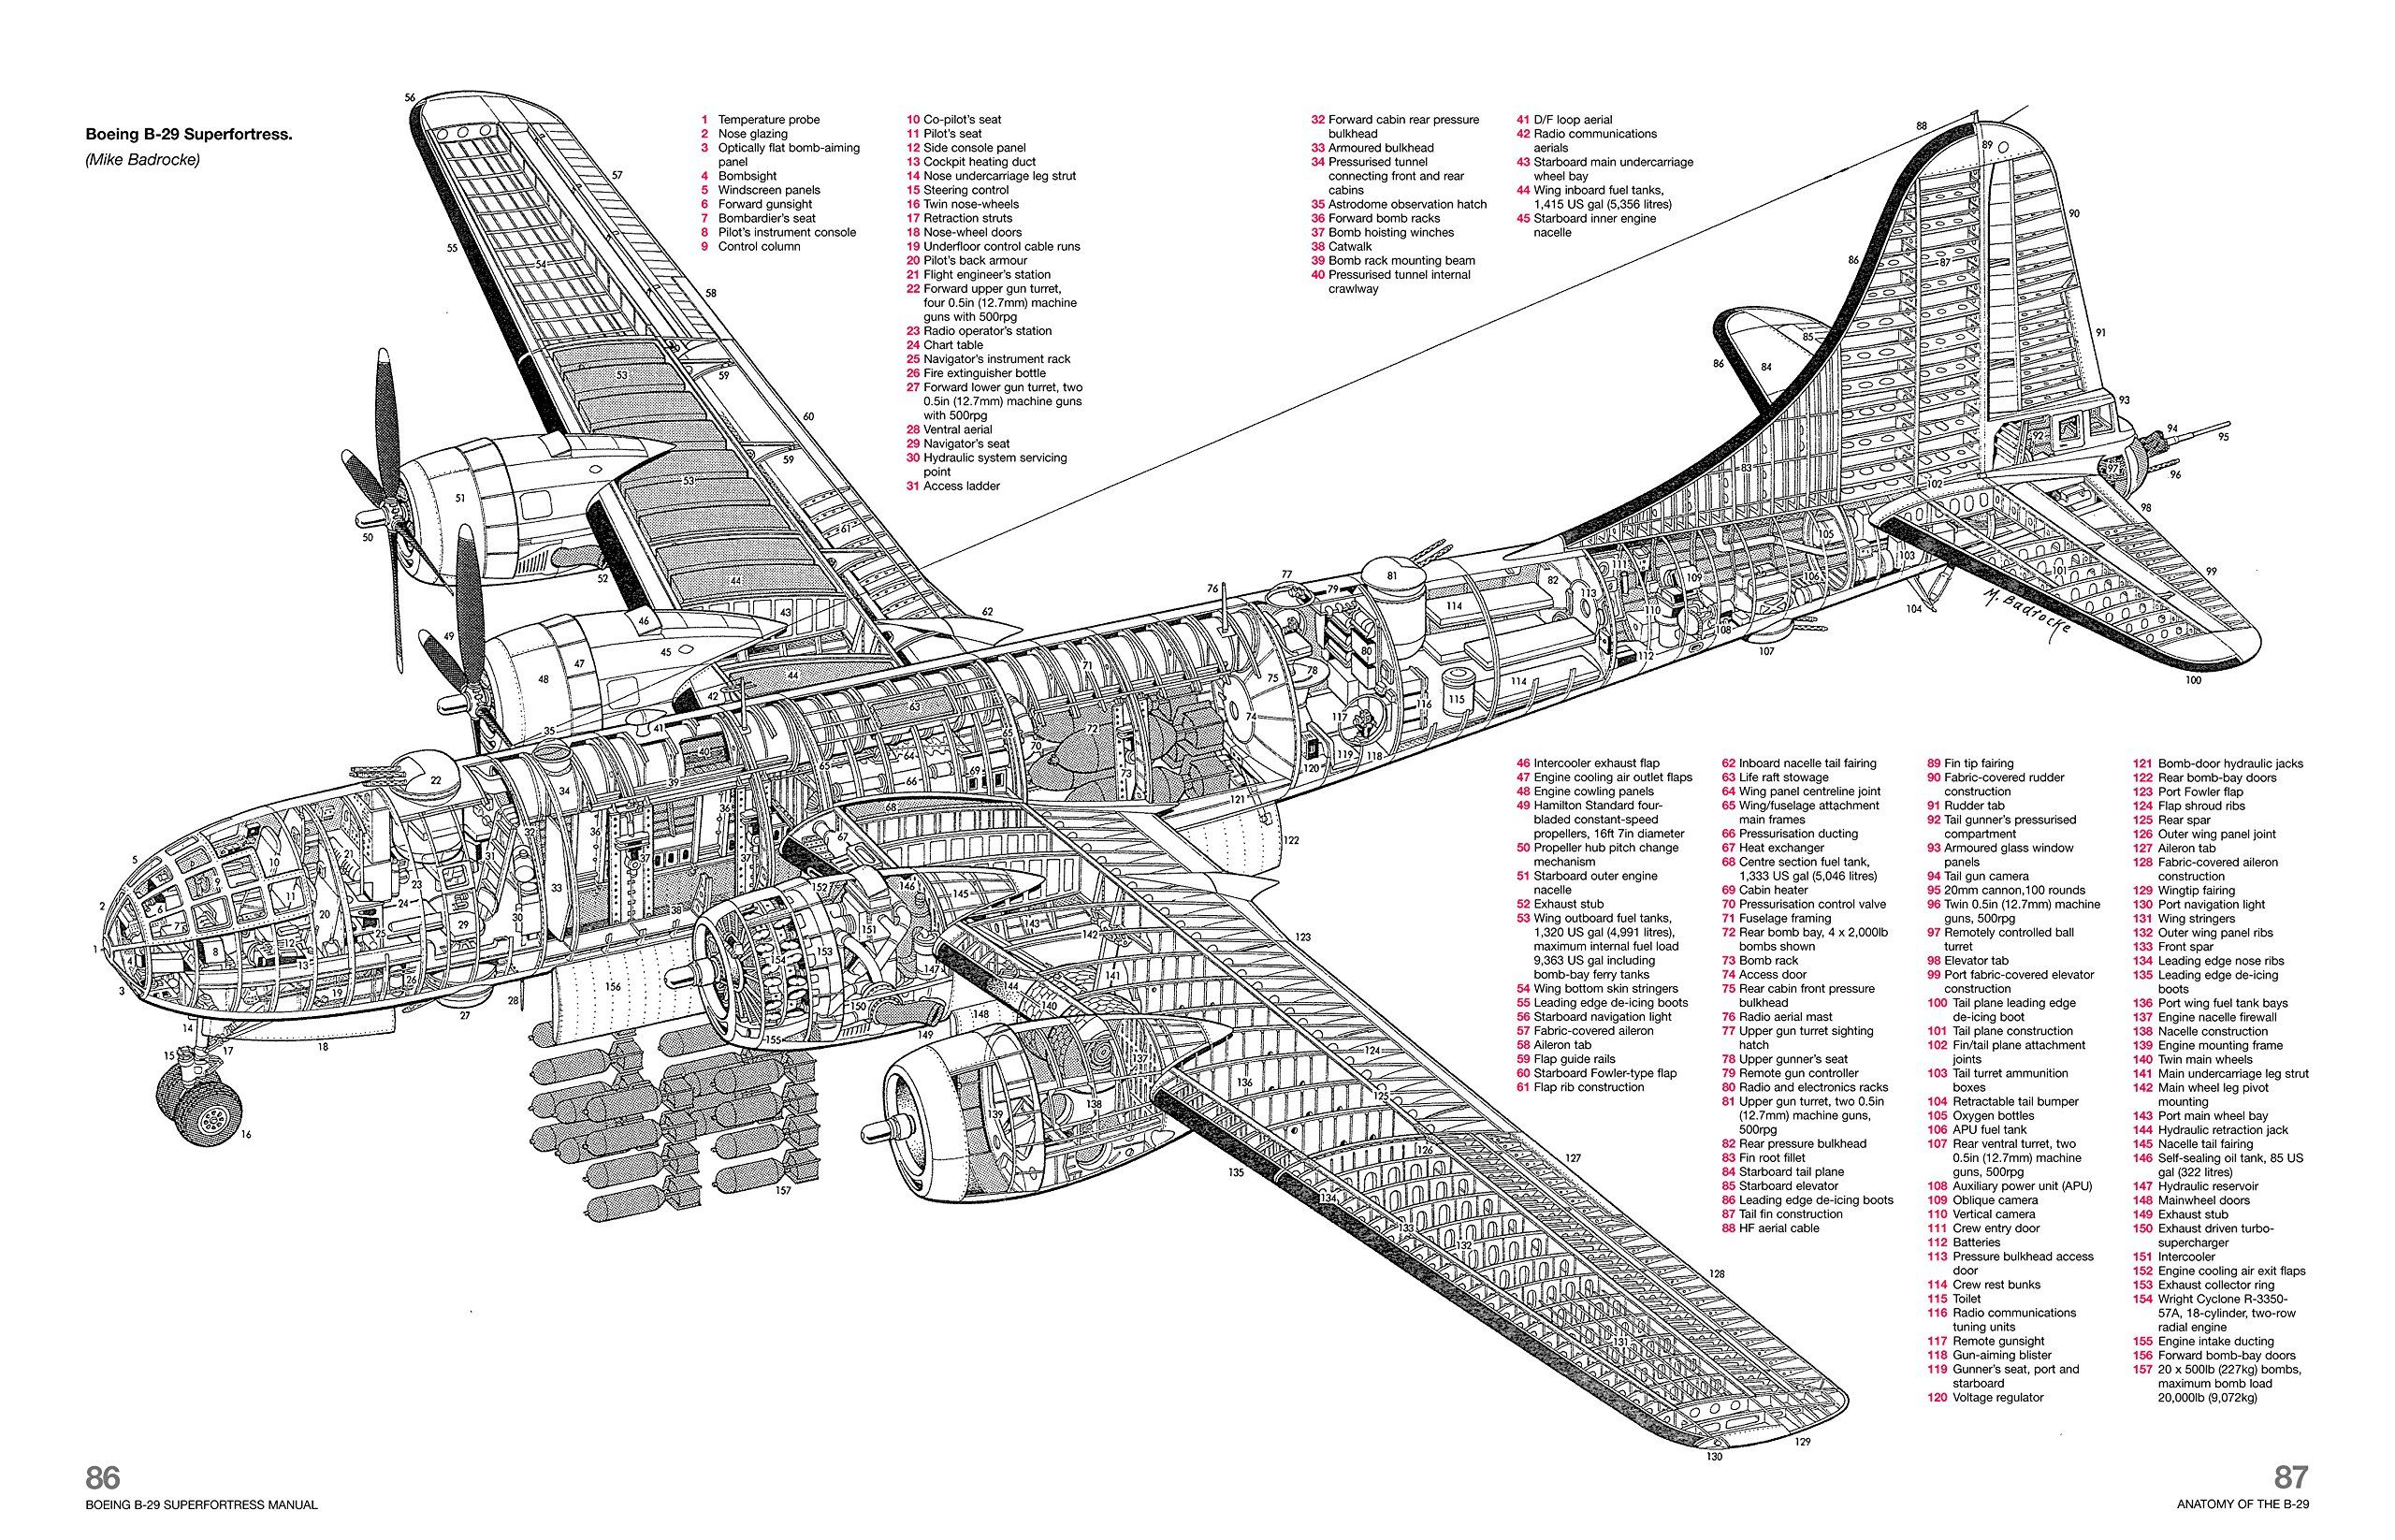 b 29 engine diagram wiring diagram namecutaways and diagrams on pinterest cutaway spacecraft and engine b [ 2560 x 1646 Pixel ]